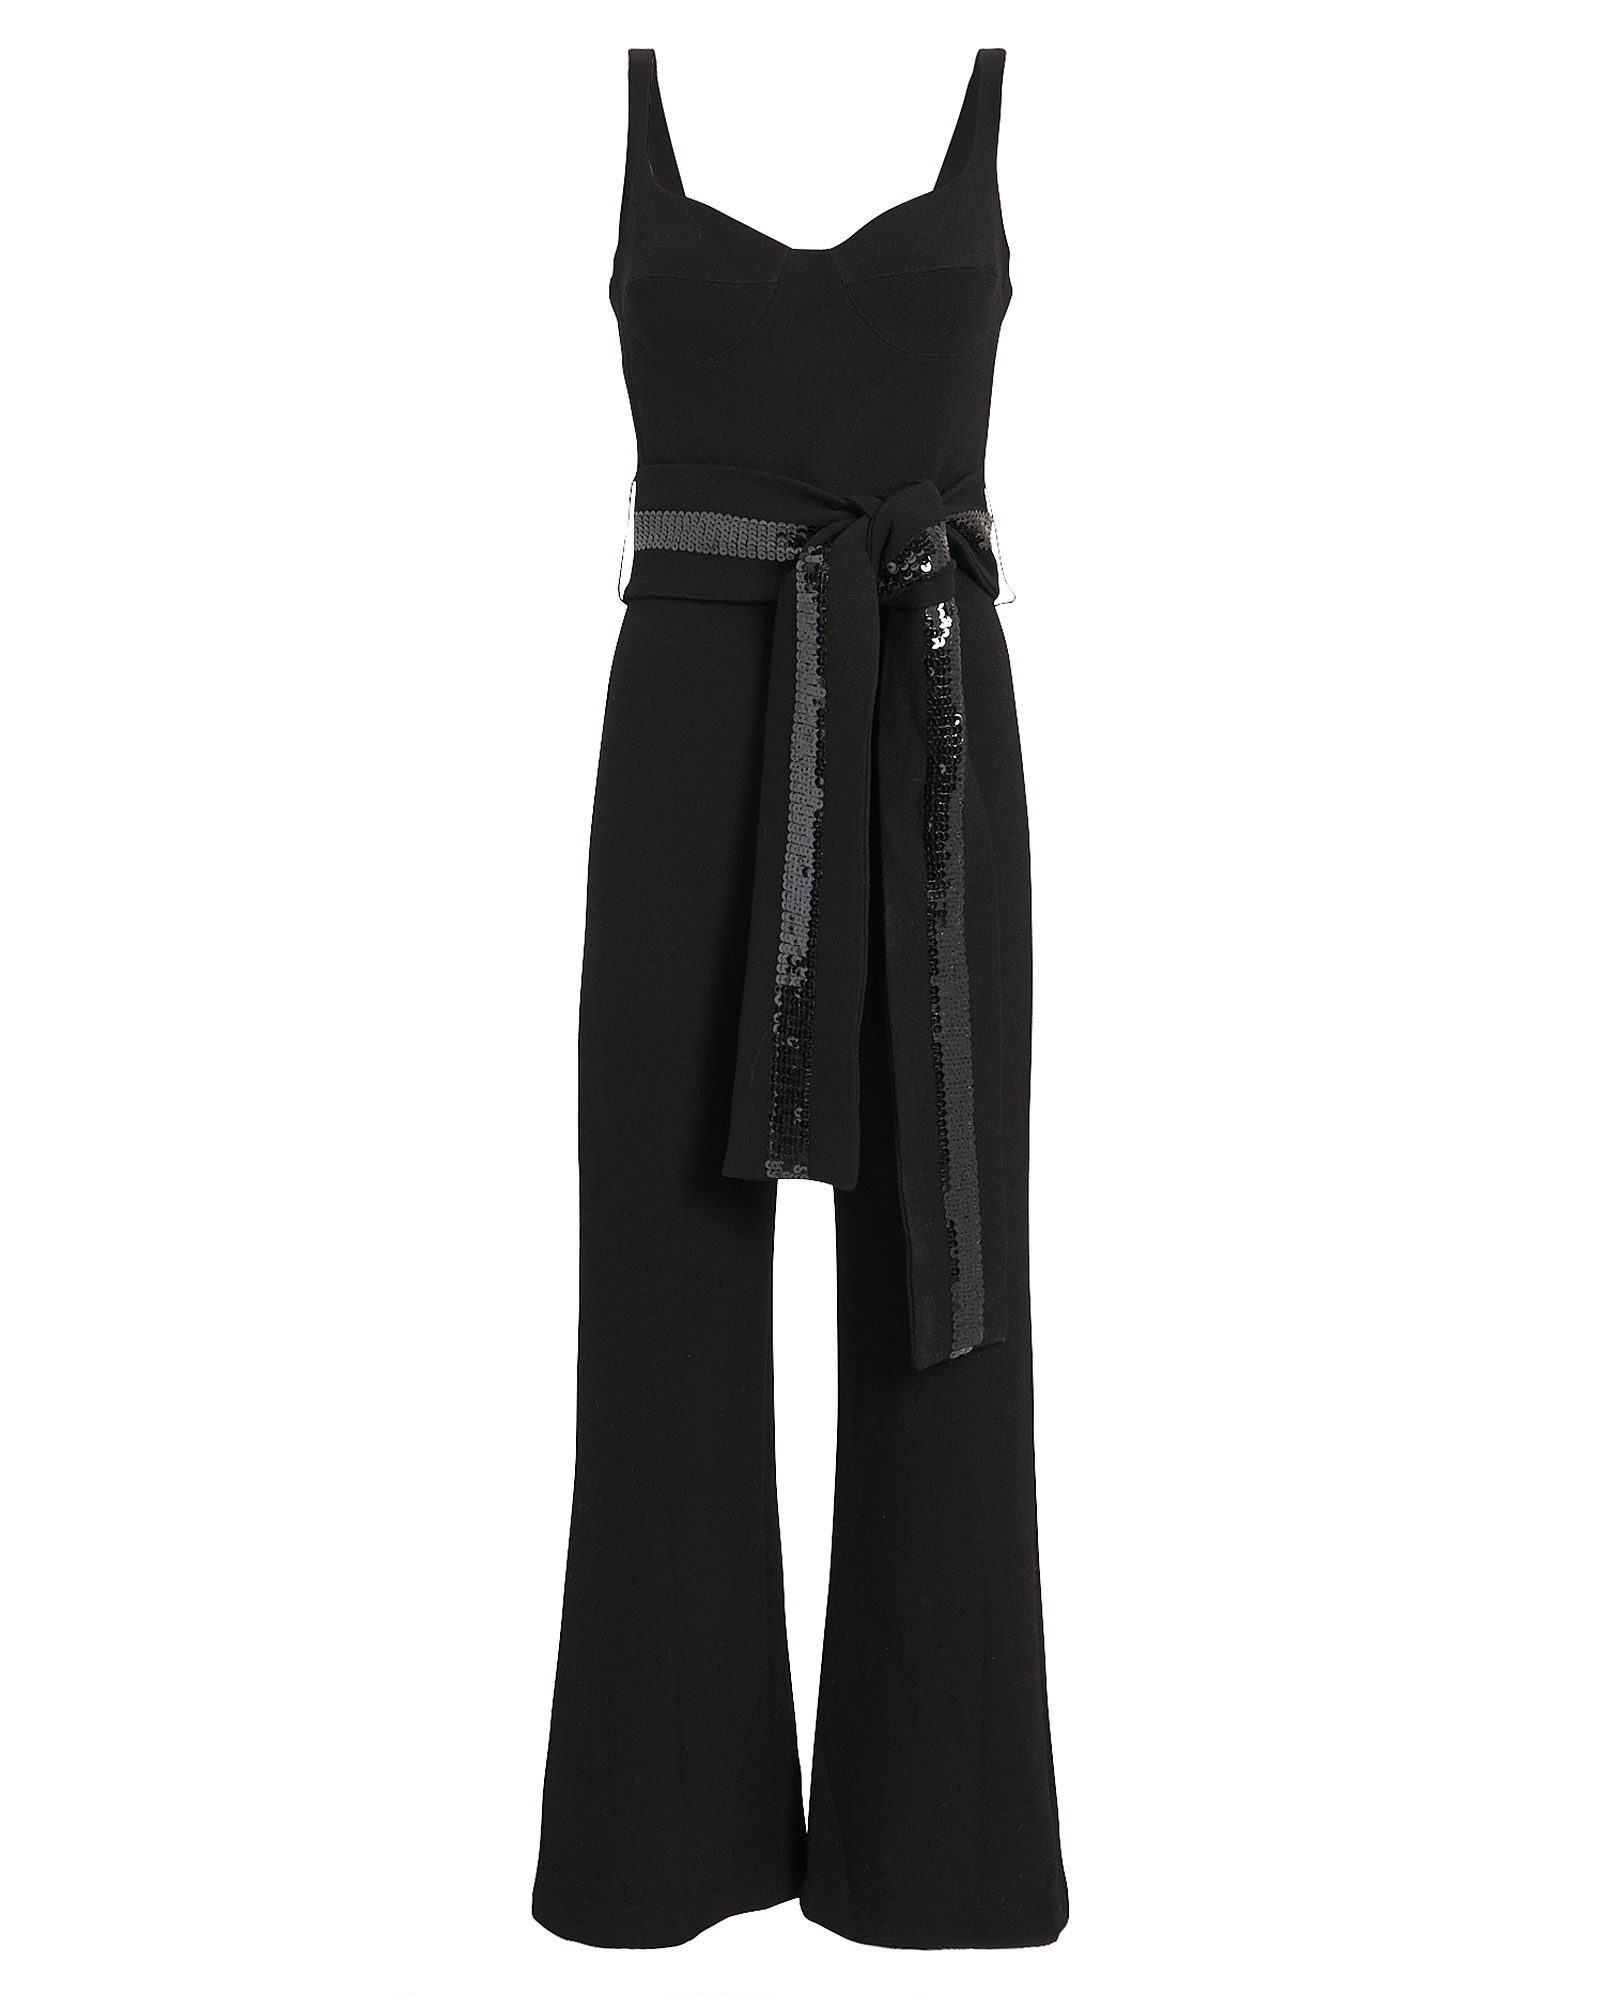 Doncella Sleeveless Belted Jumpsuit, BLACK, hi-res